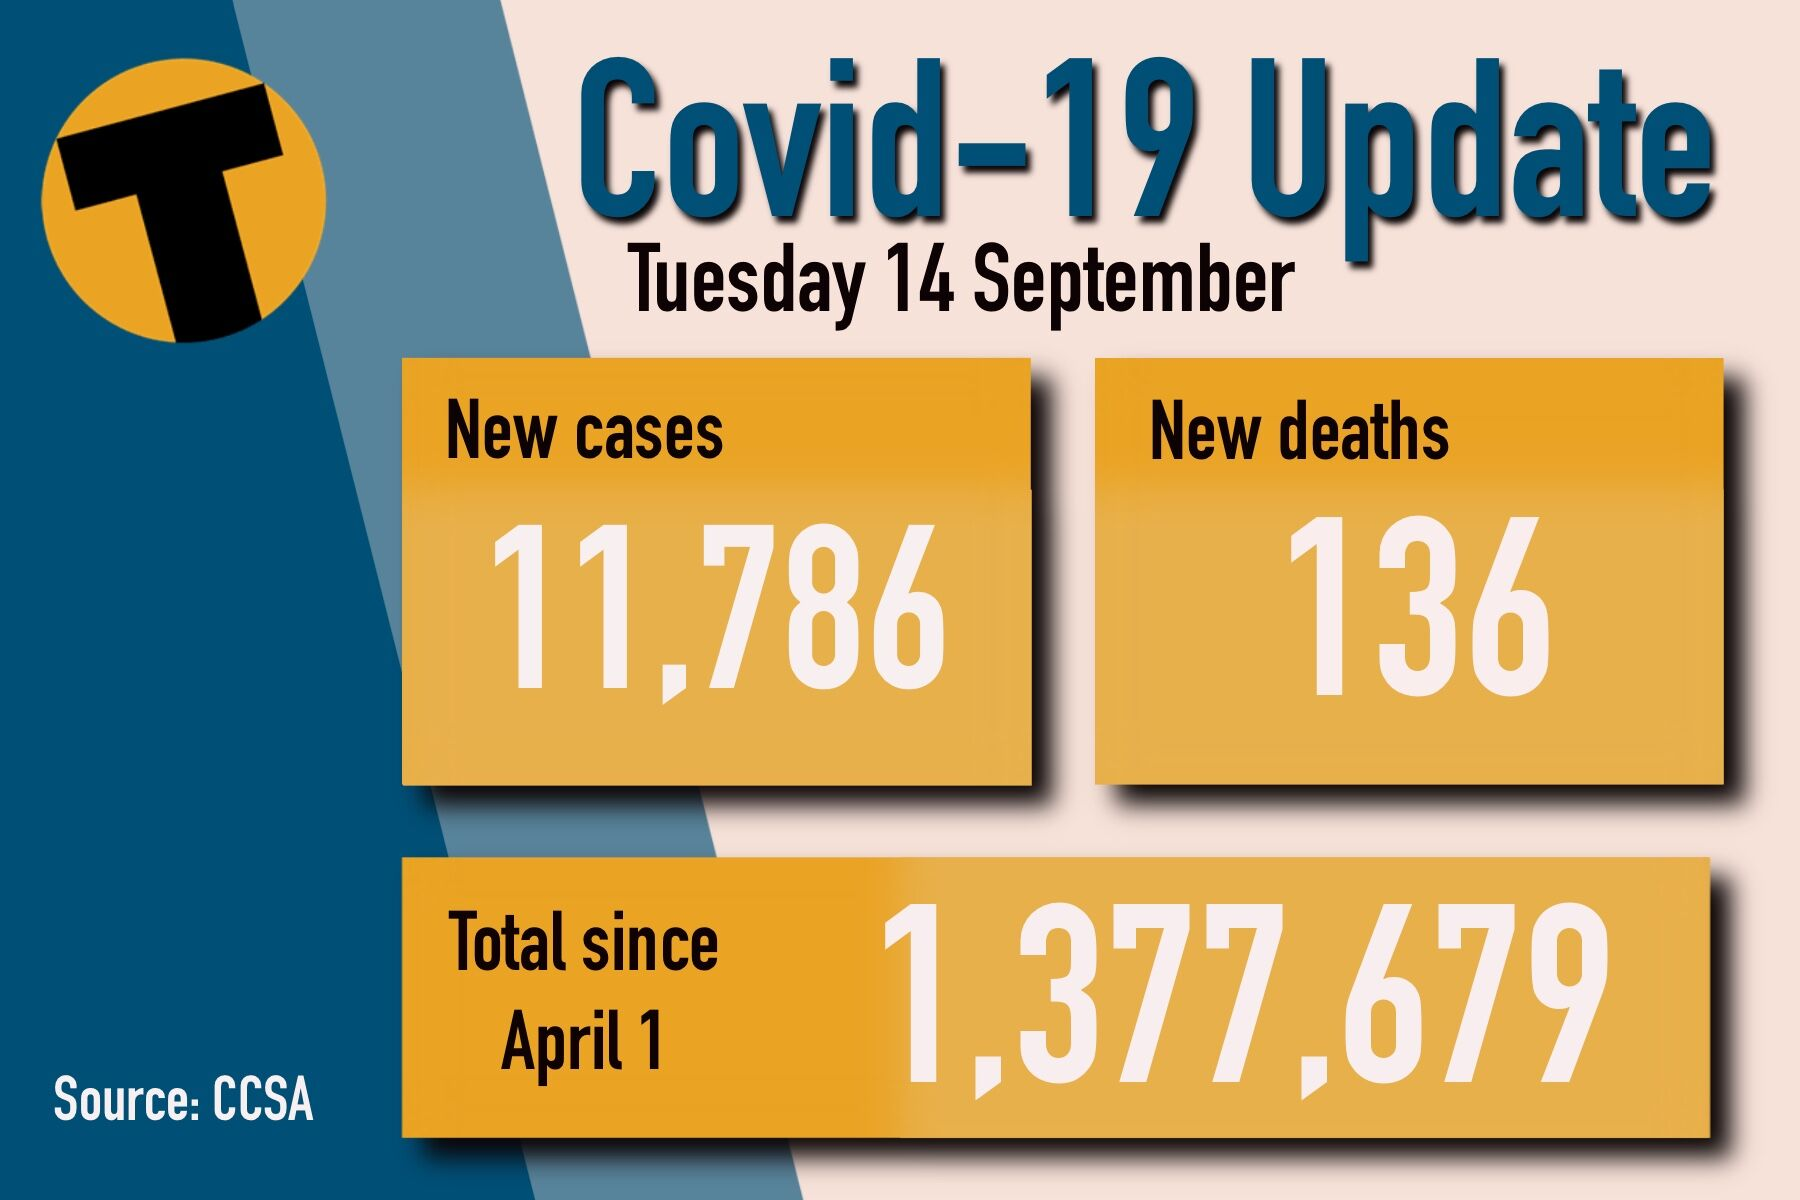 Tuesday Covid Update: 136 deaths and 11,786 new cases | News by Thaiger